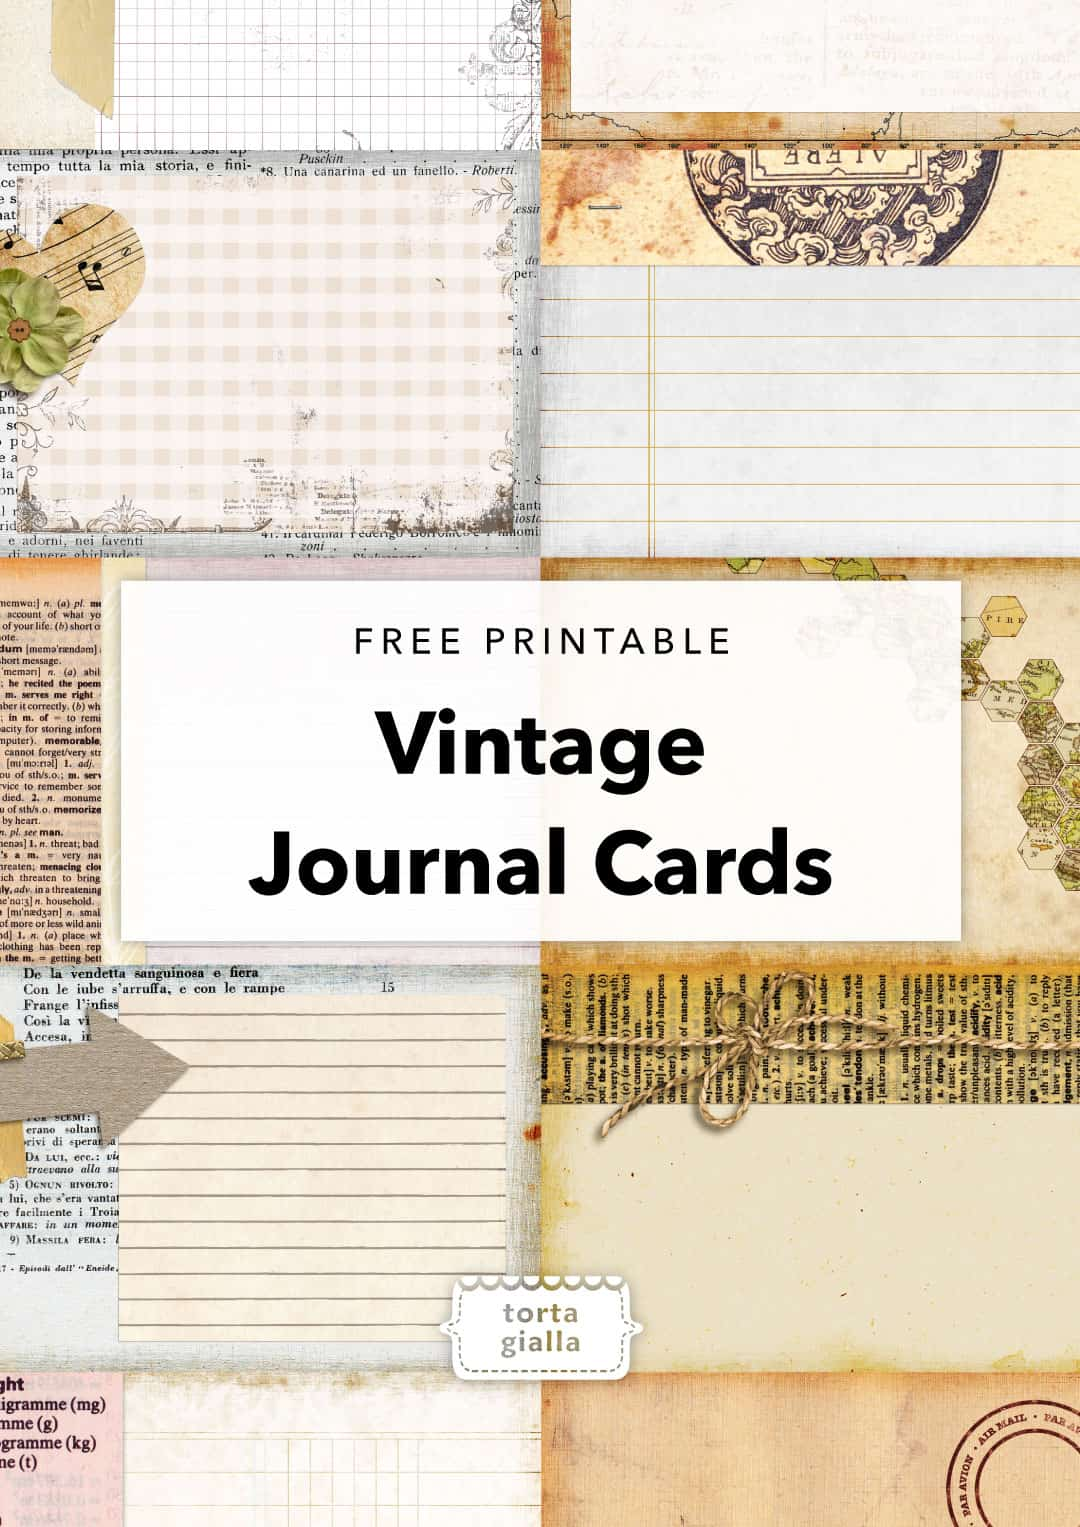 image about Free Vintage Printable named Totally free Printable - Typical Magazine Playing cards tortagialla